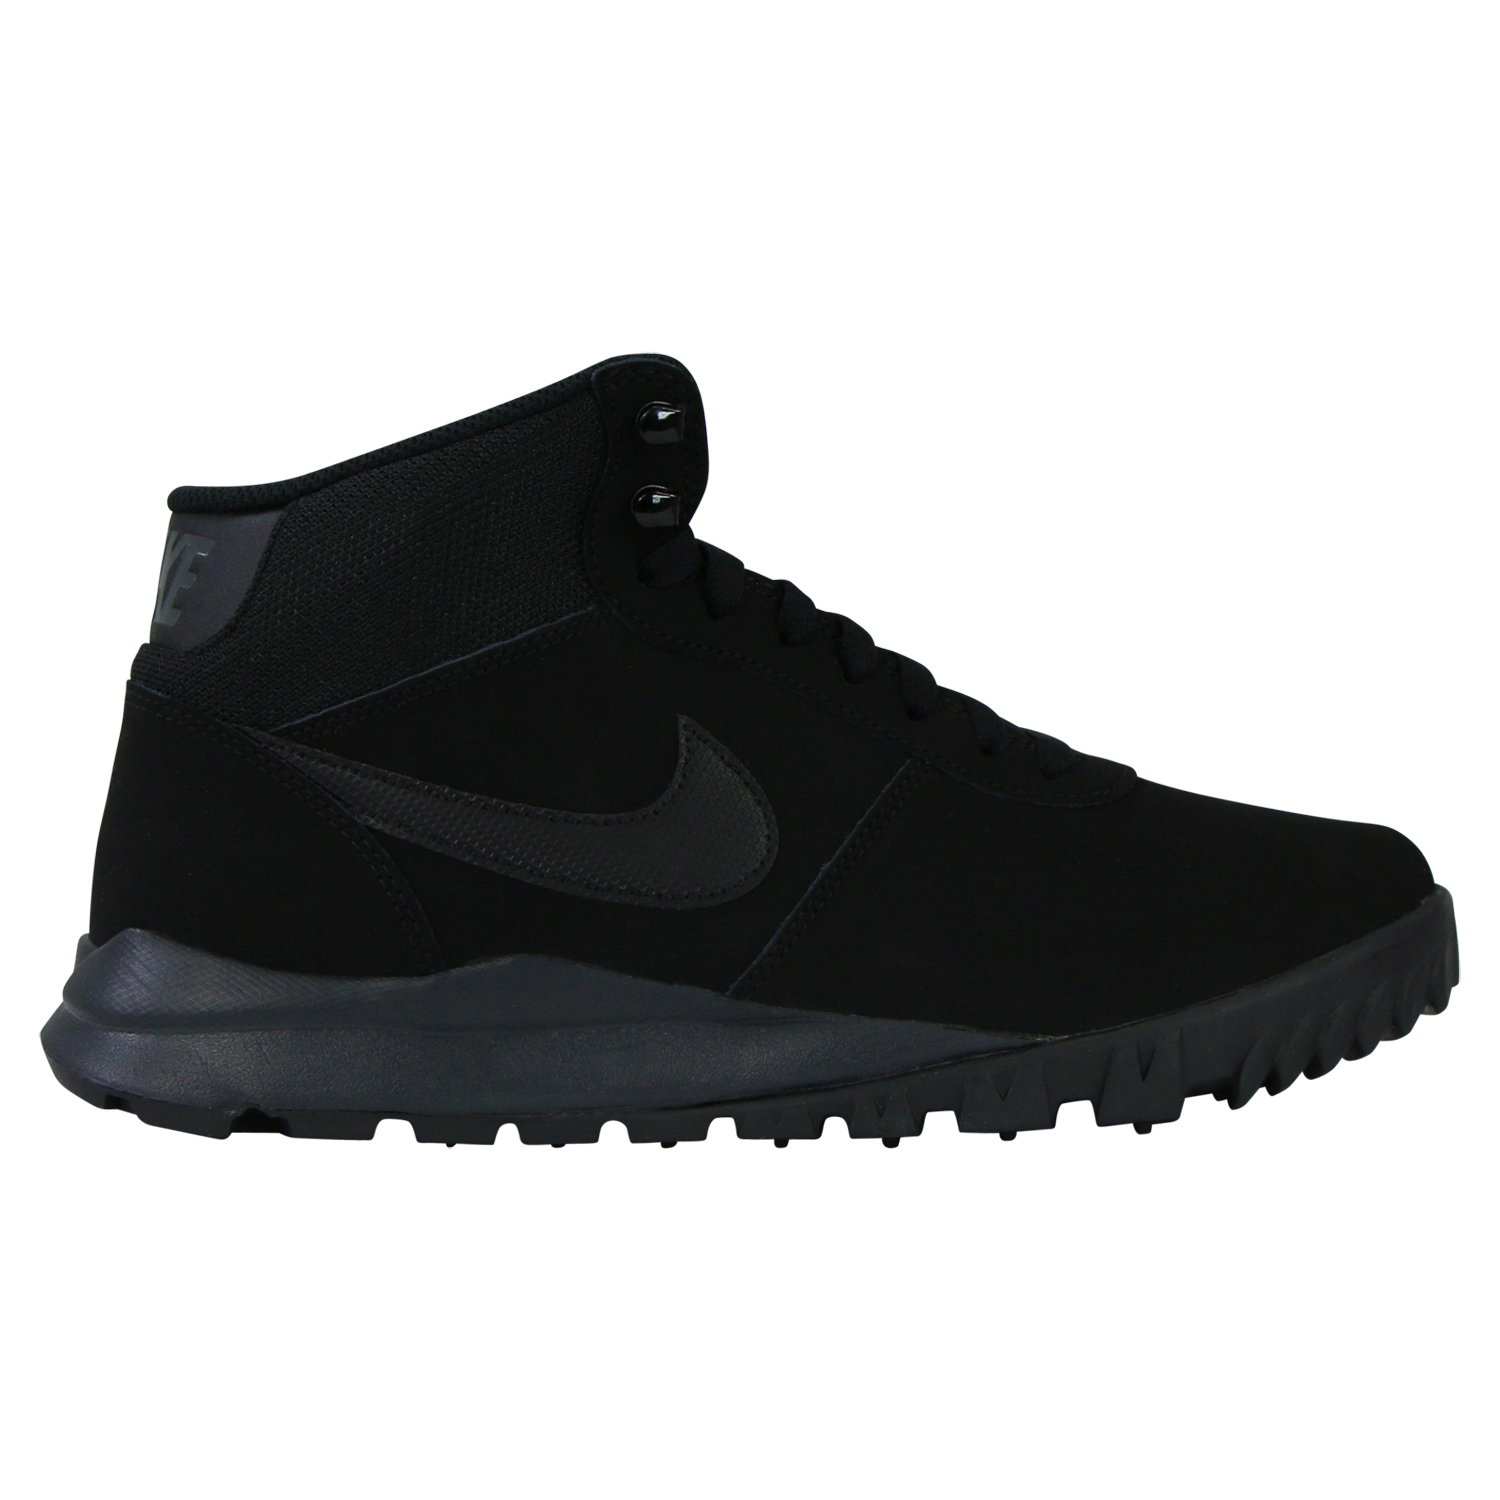 74cd95f7fe6bb5 Nike Hoodland Leather Schuhe Boots Winterstiefel Herren 654888 090 ...